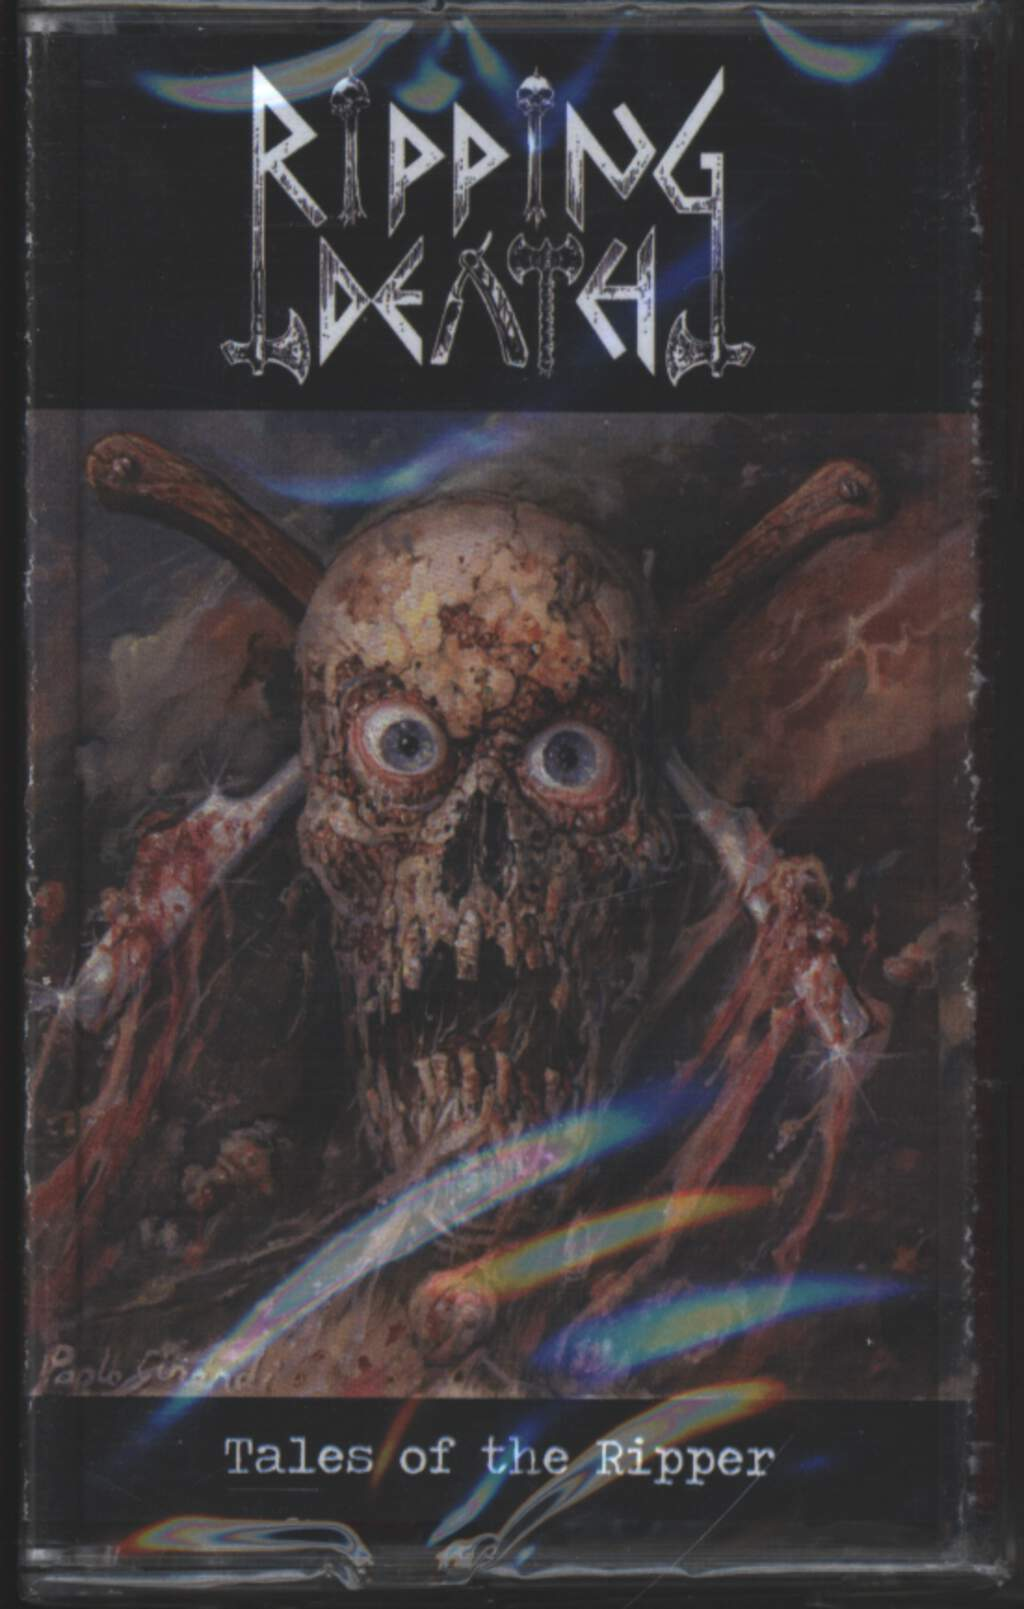 Ripping Death: Tales Of The Ripper, Compact Cassette